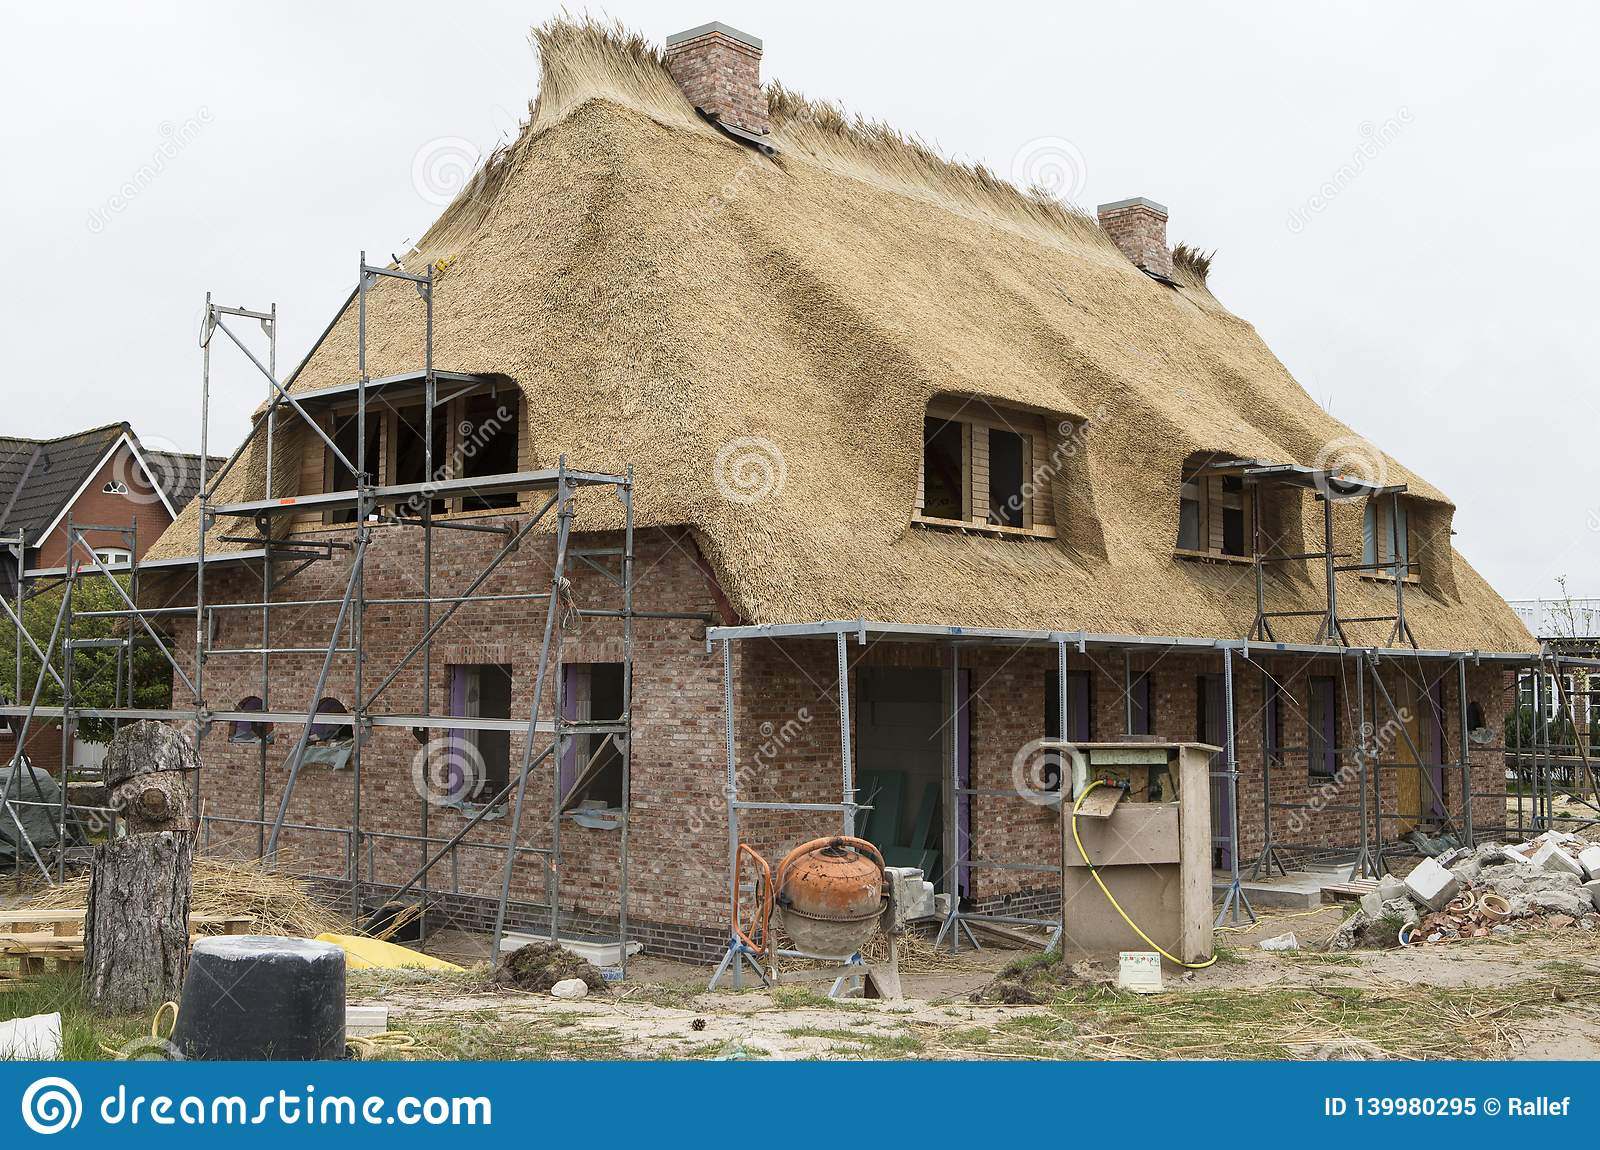 House with rooftop in shell construction